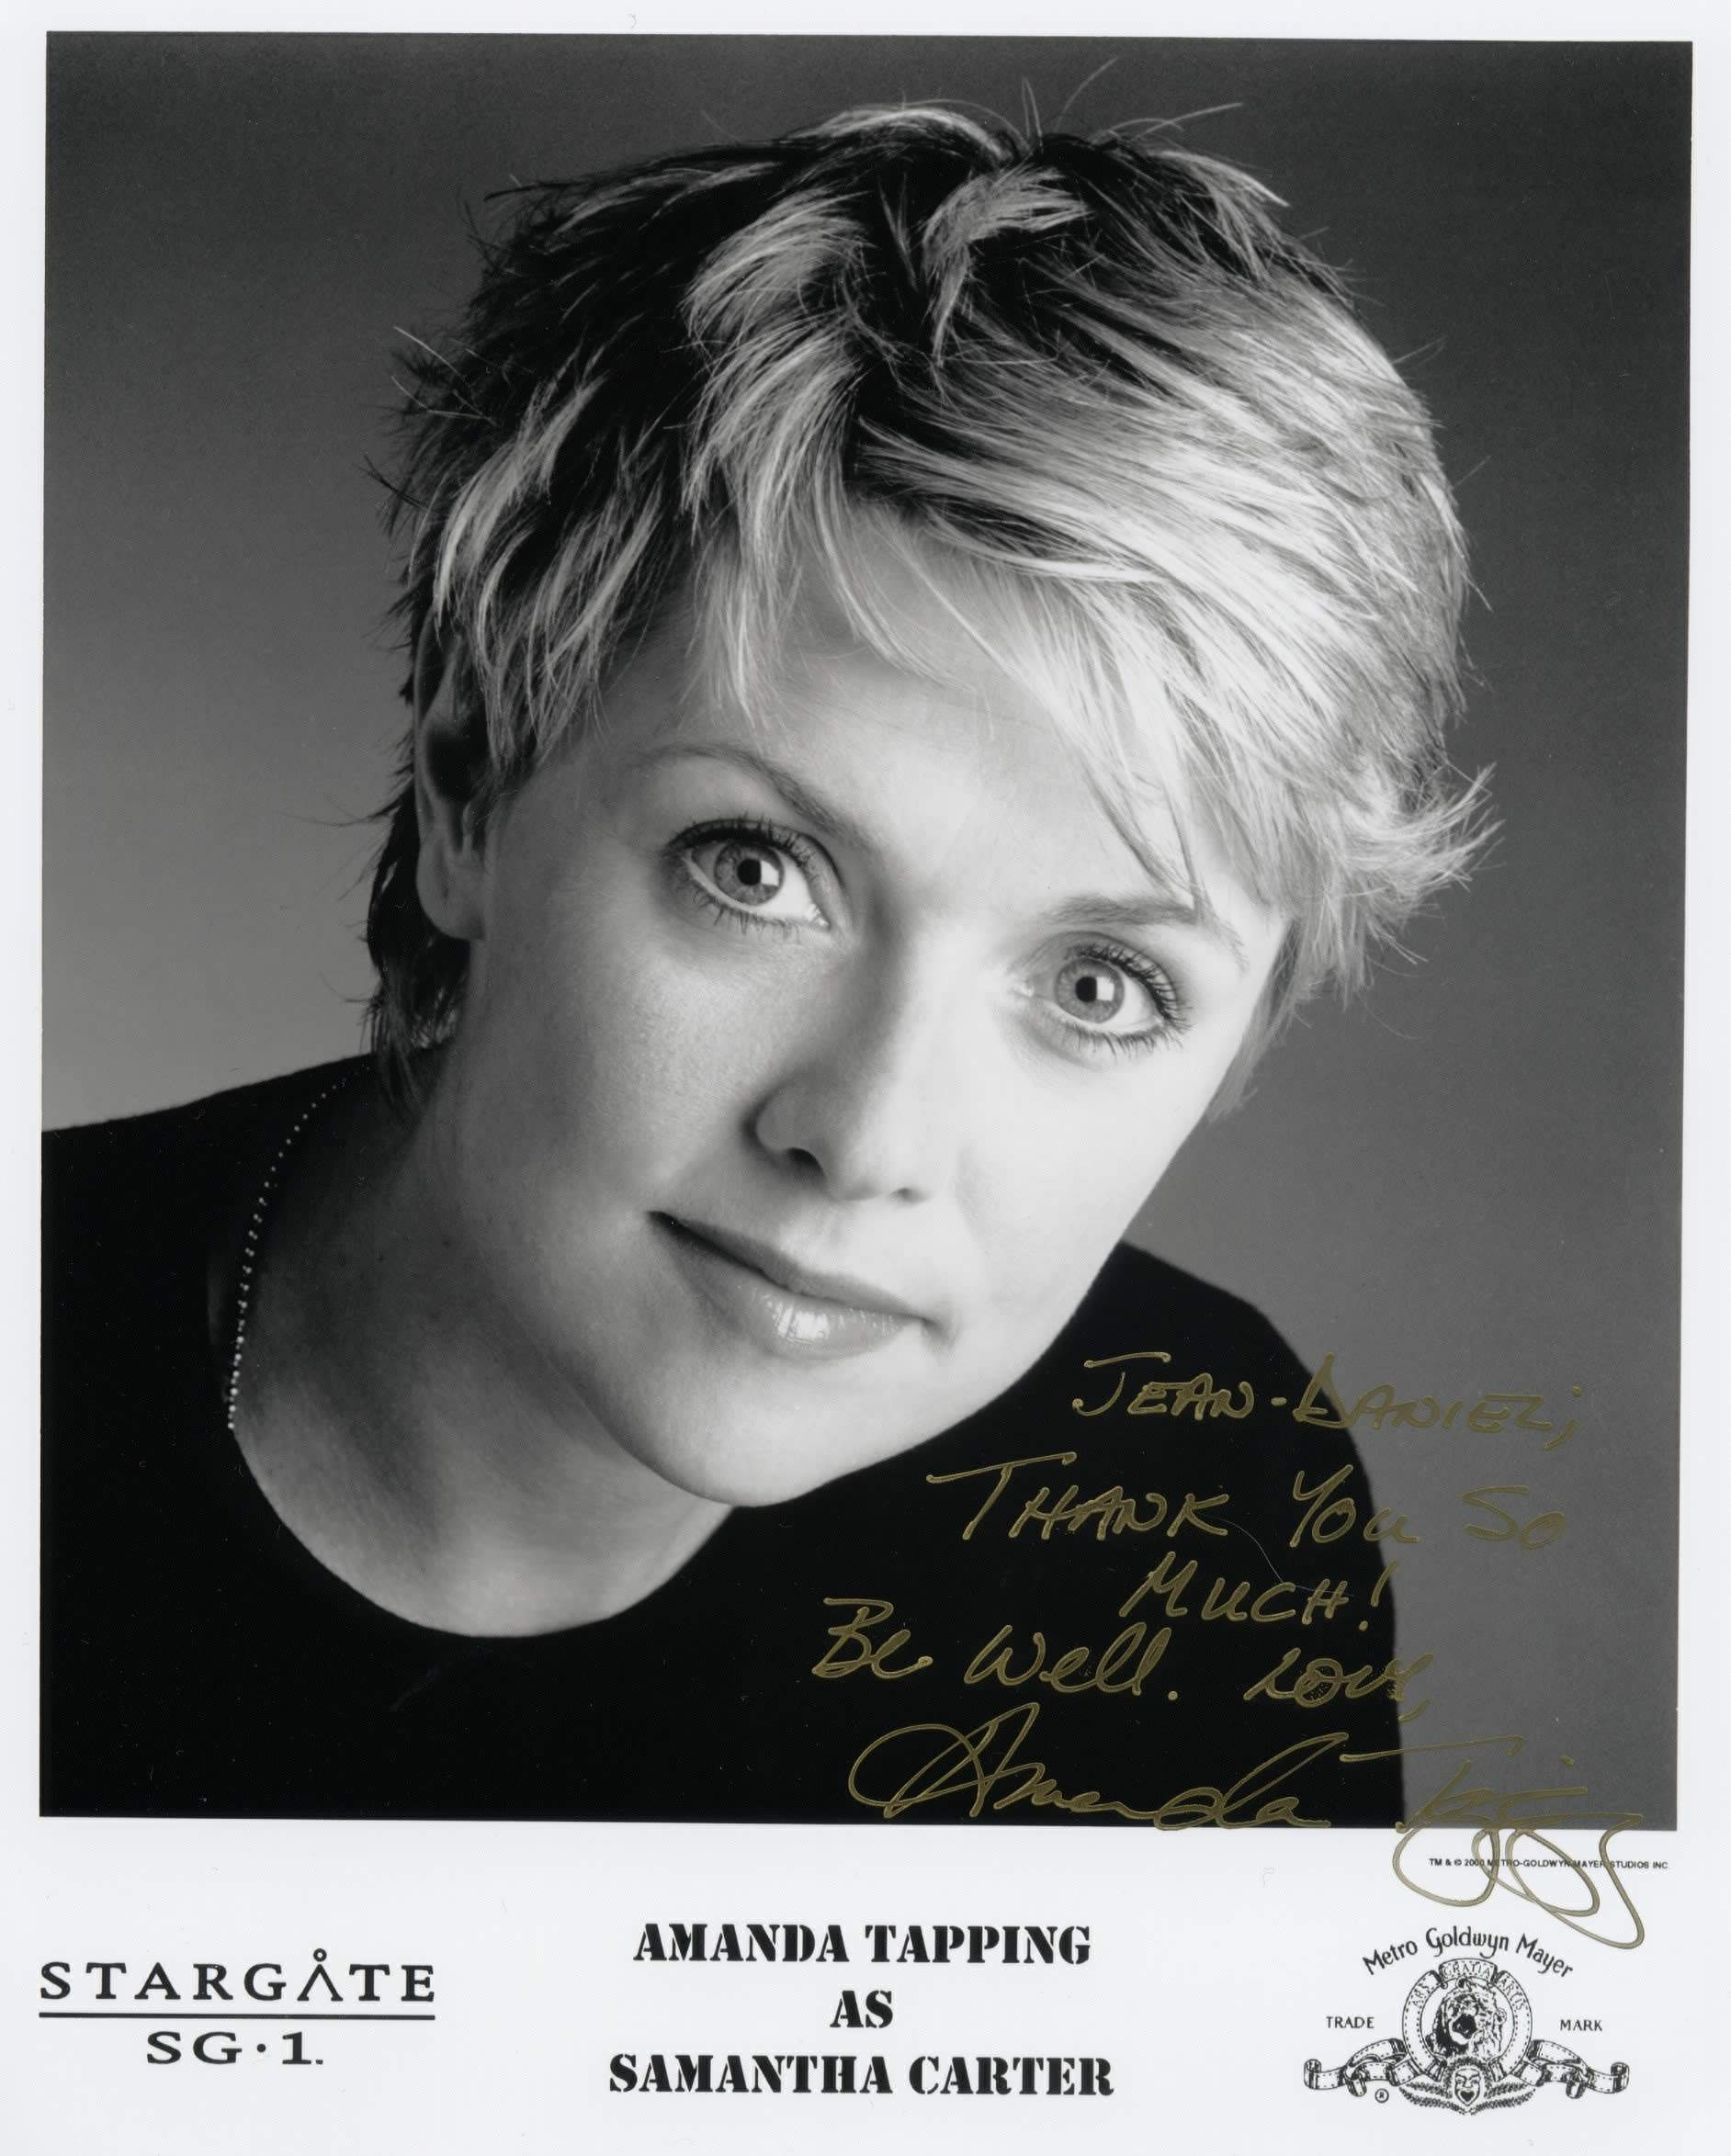 Amanda Tapping X Files amanda tapping photos - page 1 - stargate sg-1 on series-80